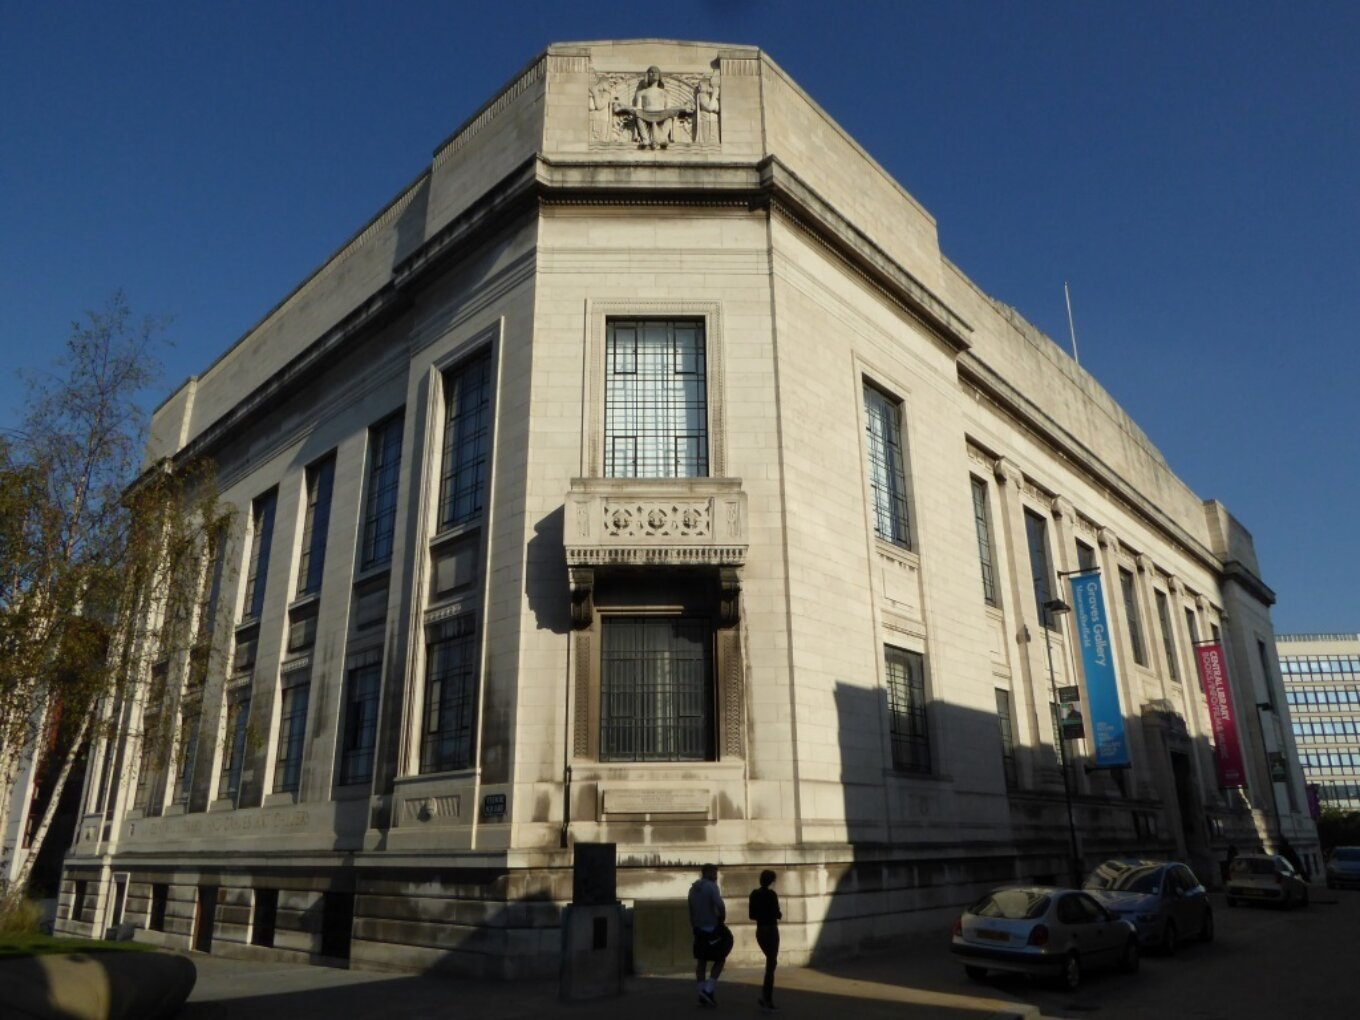 Sheffield central library 21684987449